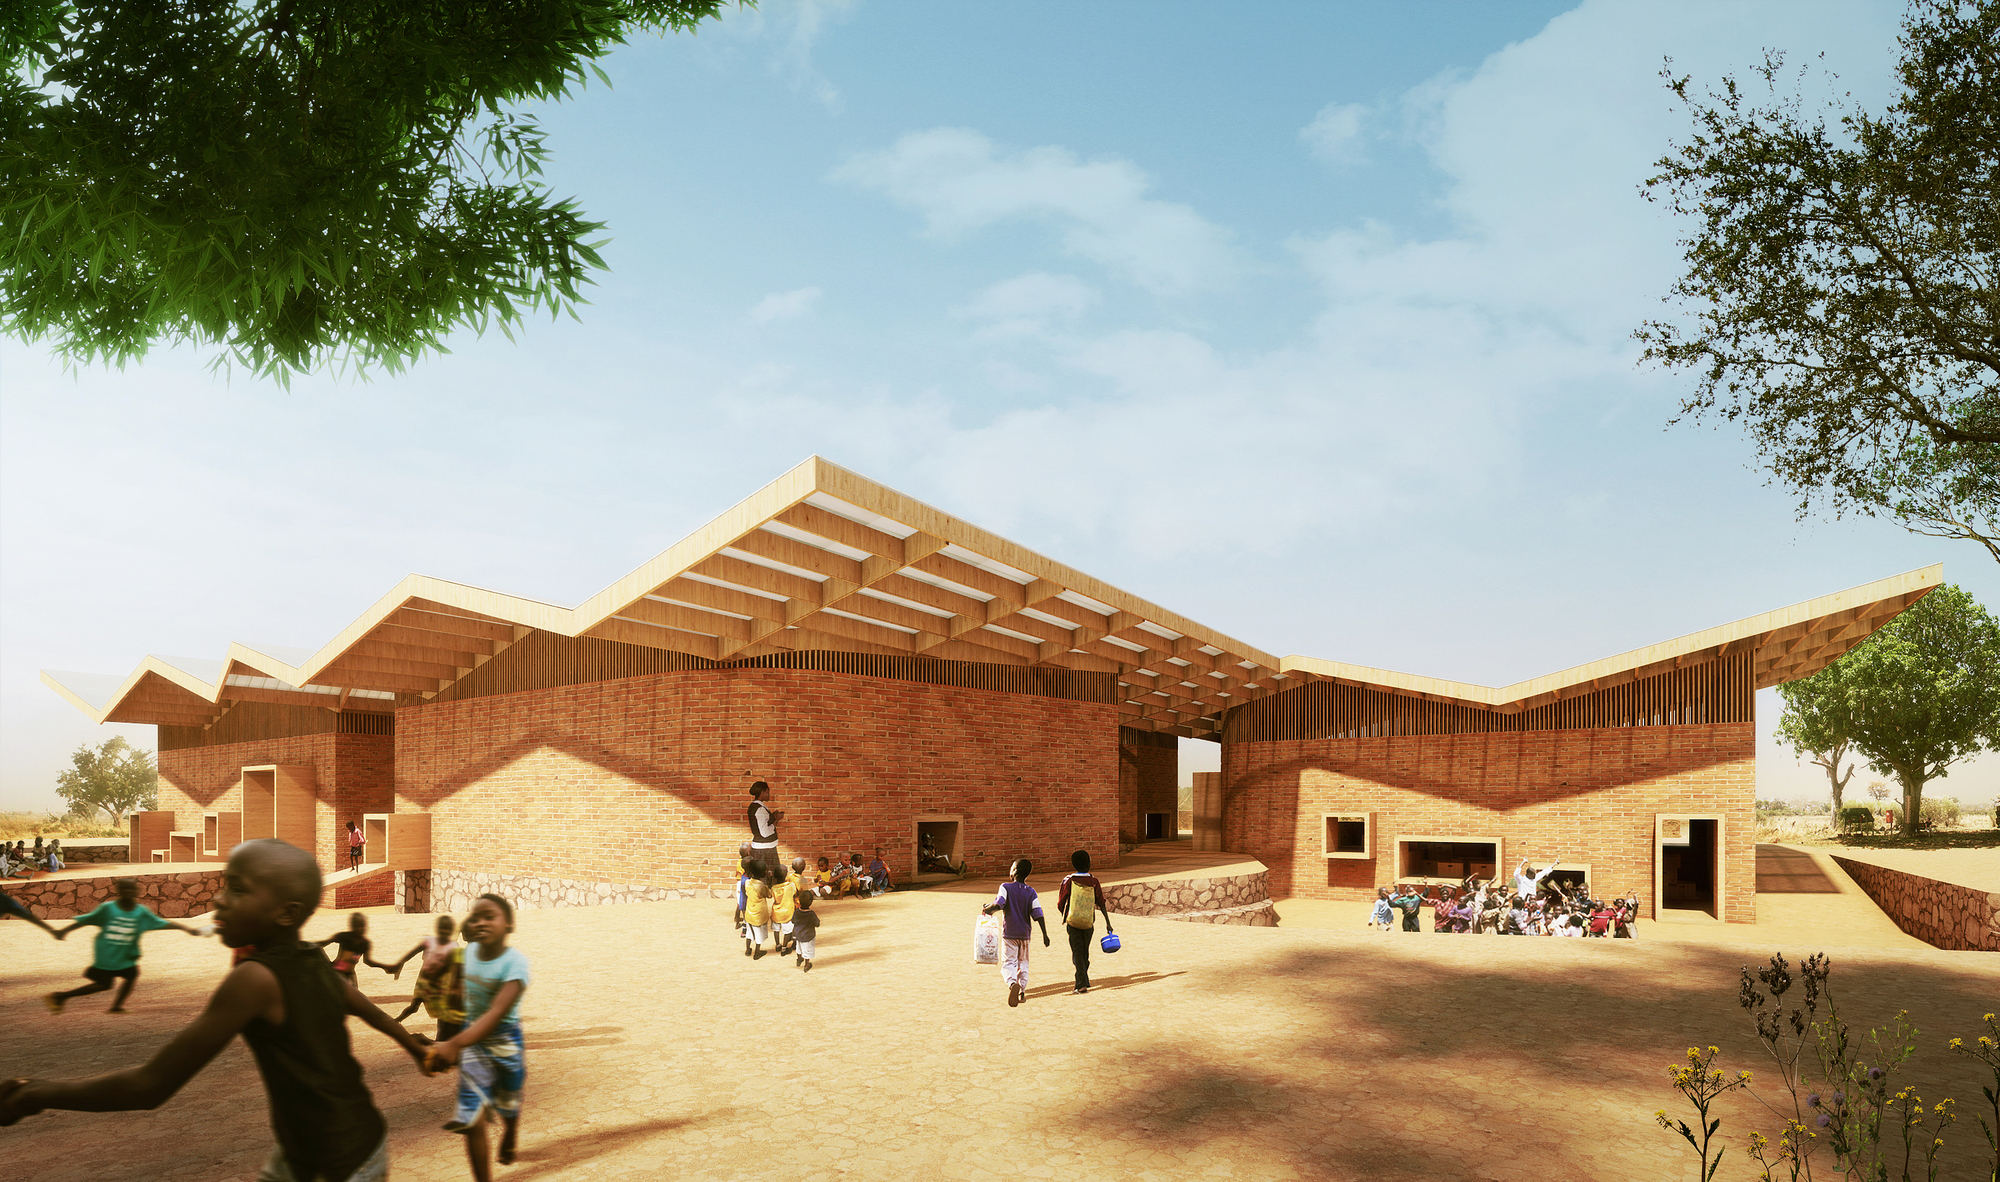 Francis kéré designs education campus for mama sarah obama foundation in kenya archdaily